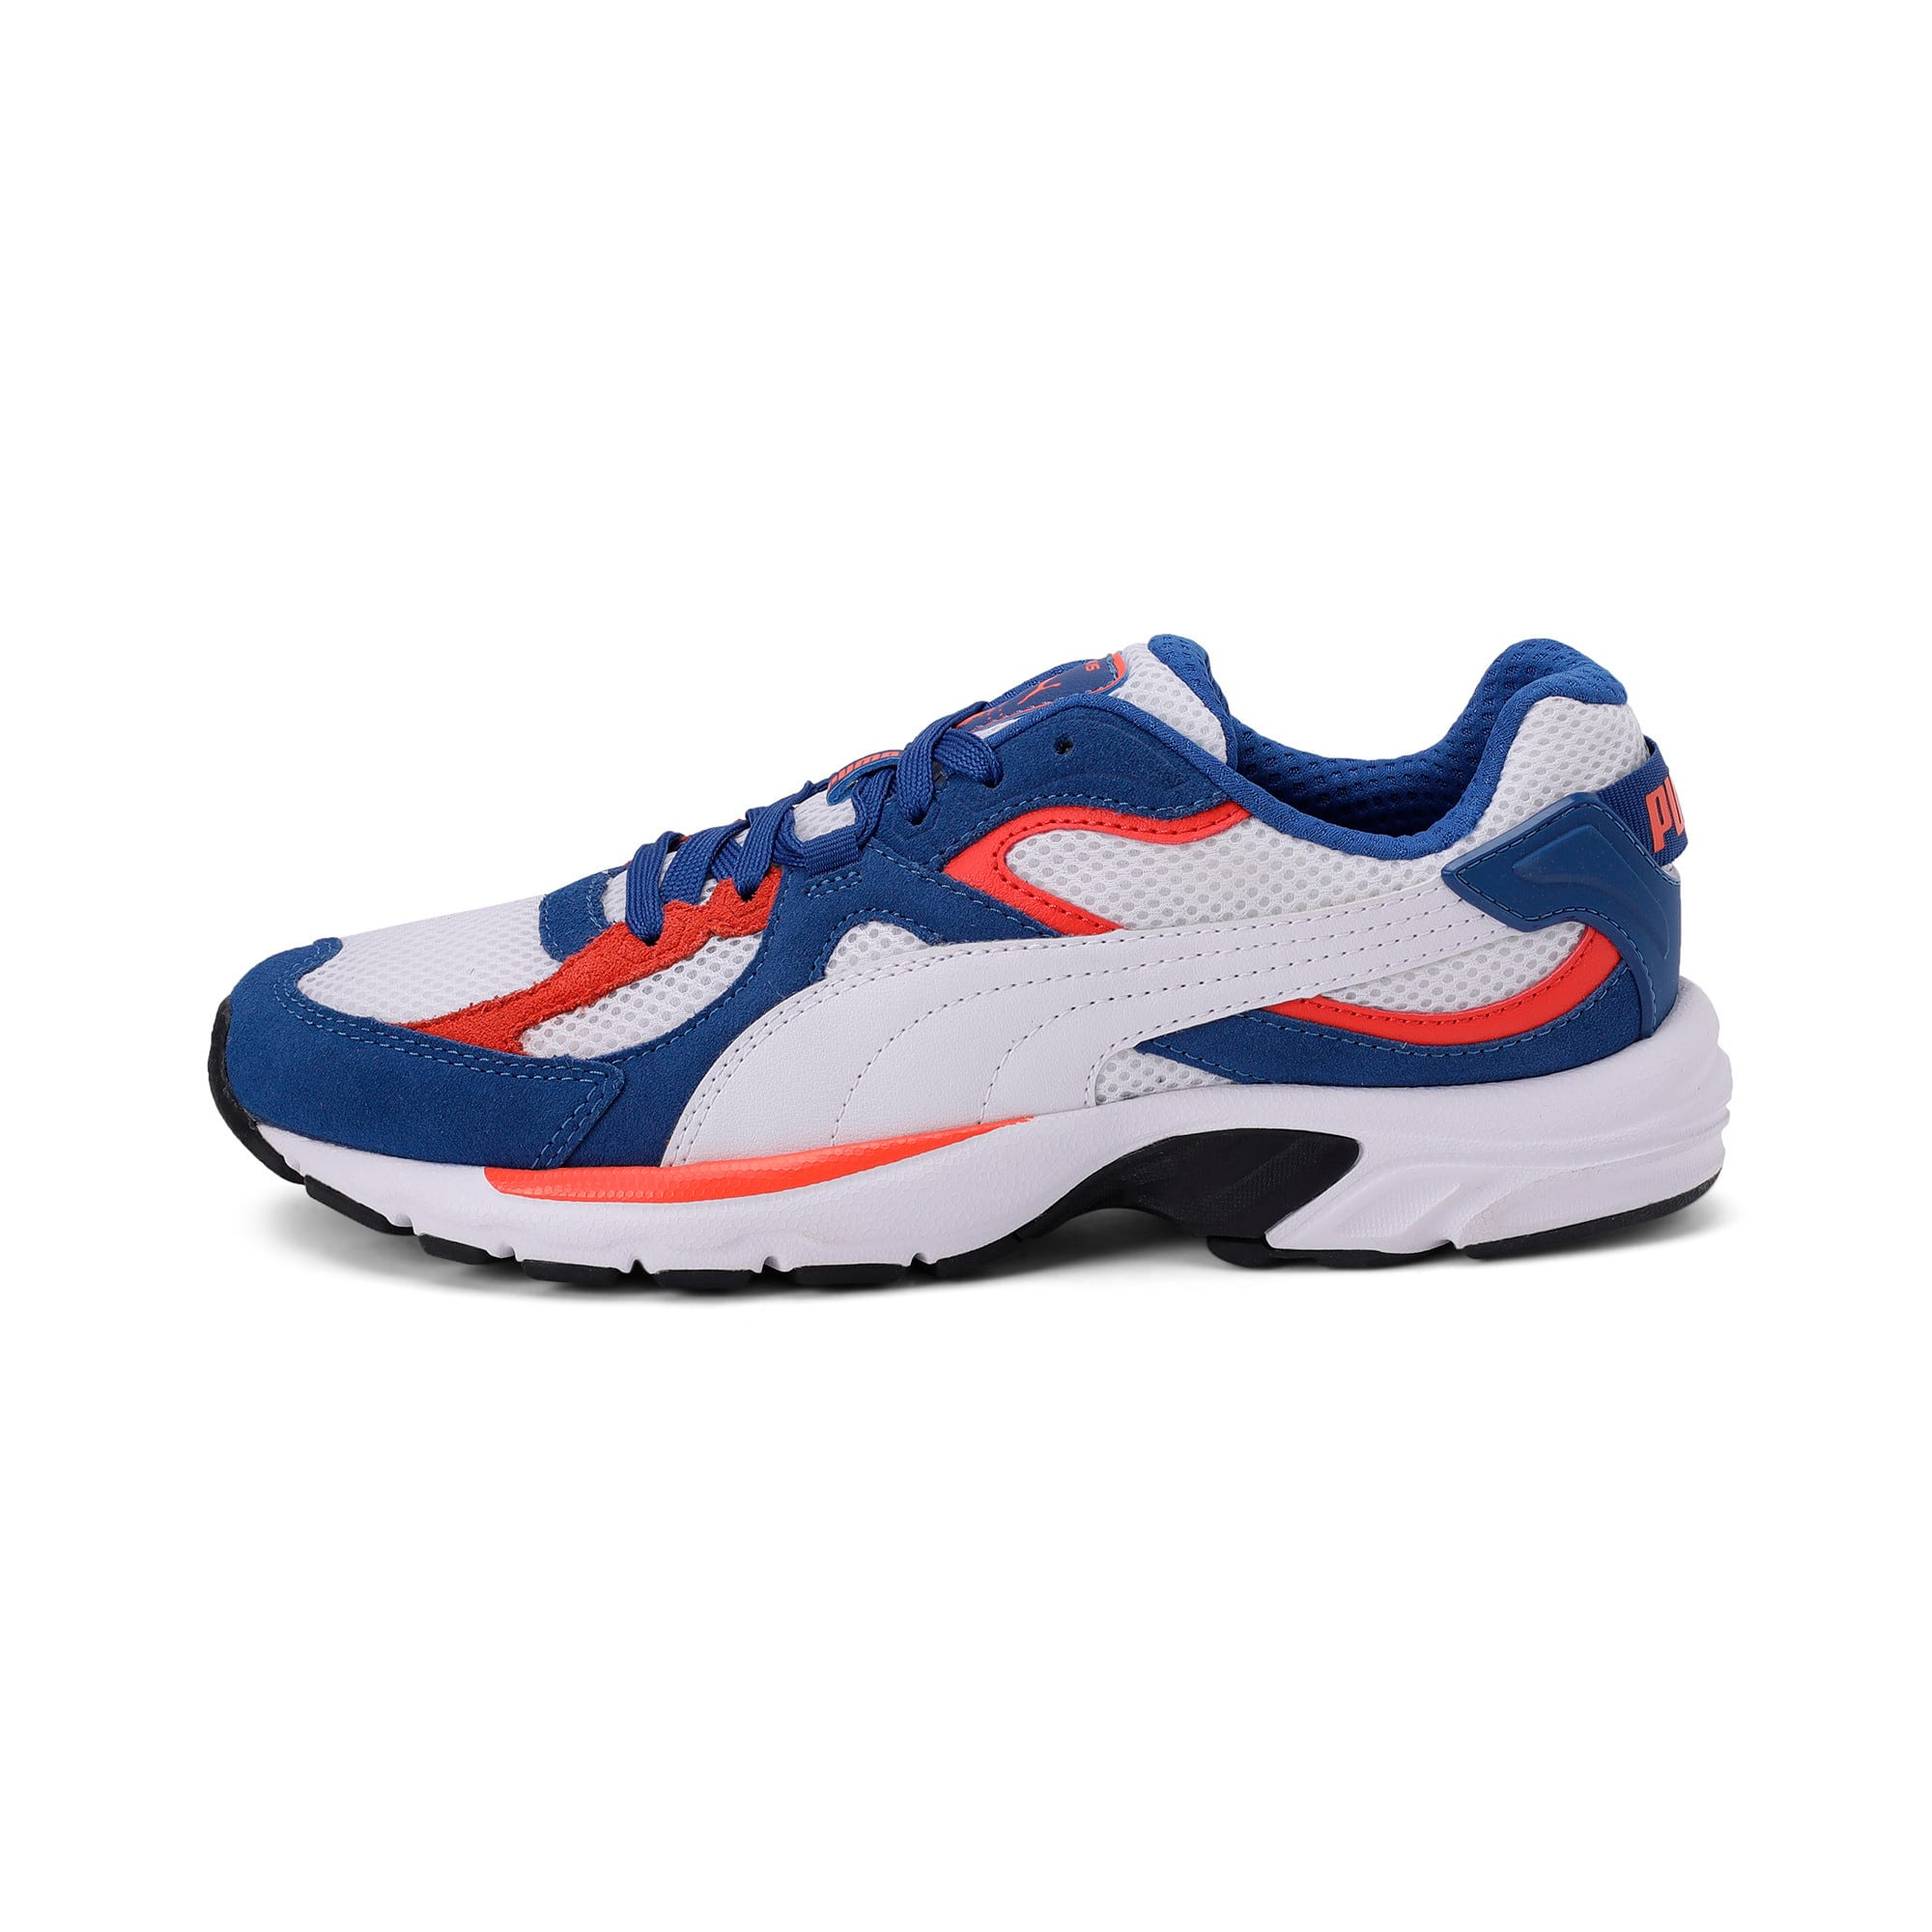 Thumbnail 1 of Axis Plus SD Trainers, White-G Blue-C Tomato-Black, medium-IND